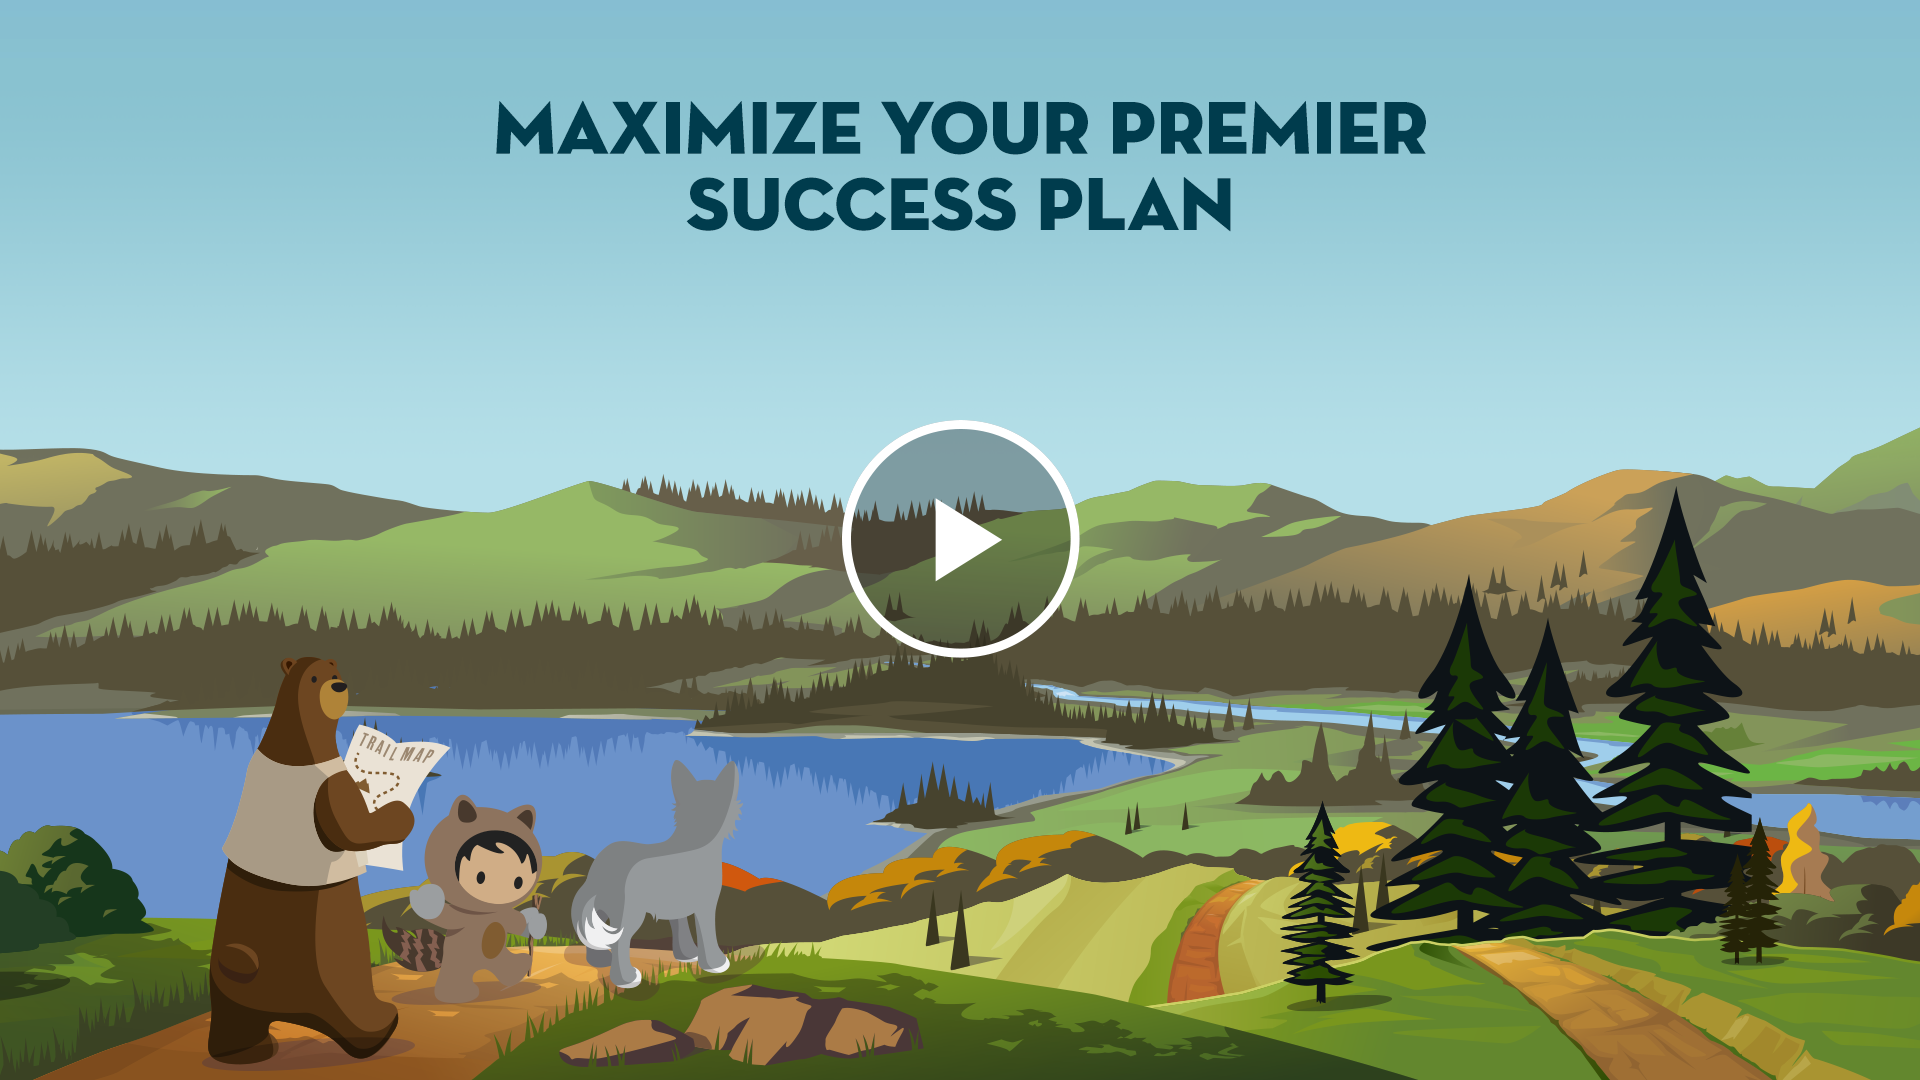 Maximize Your Premier Success Plan